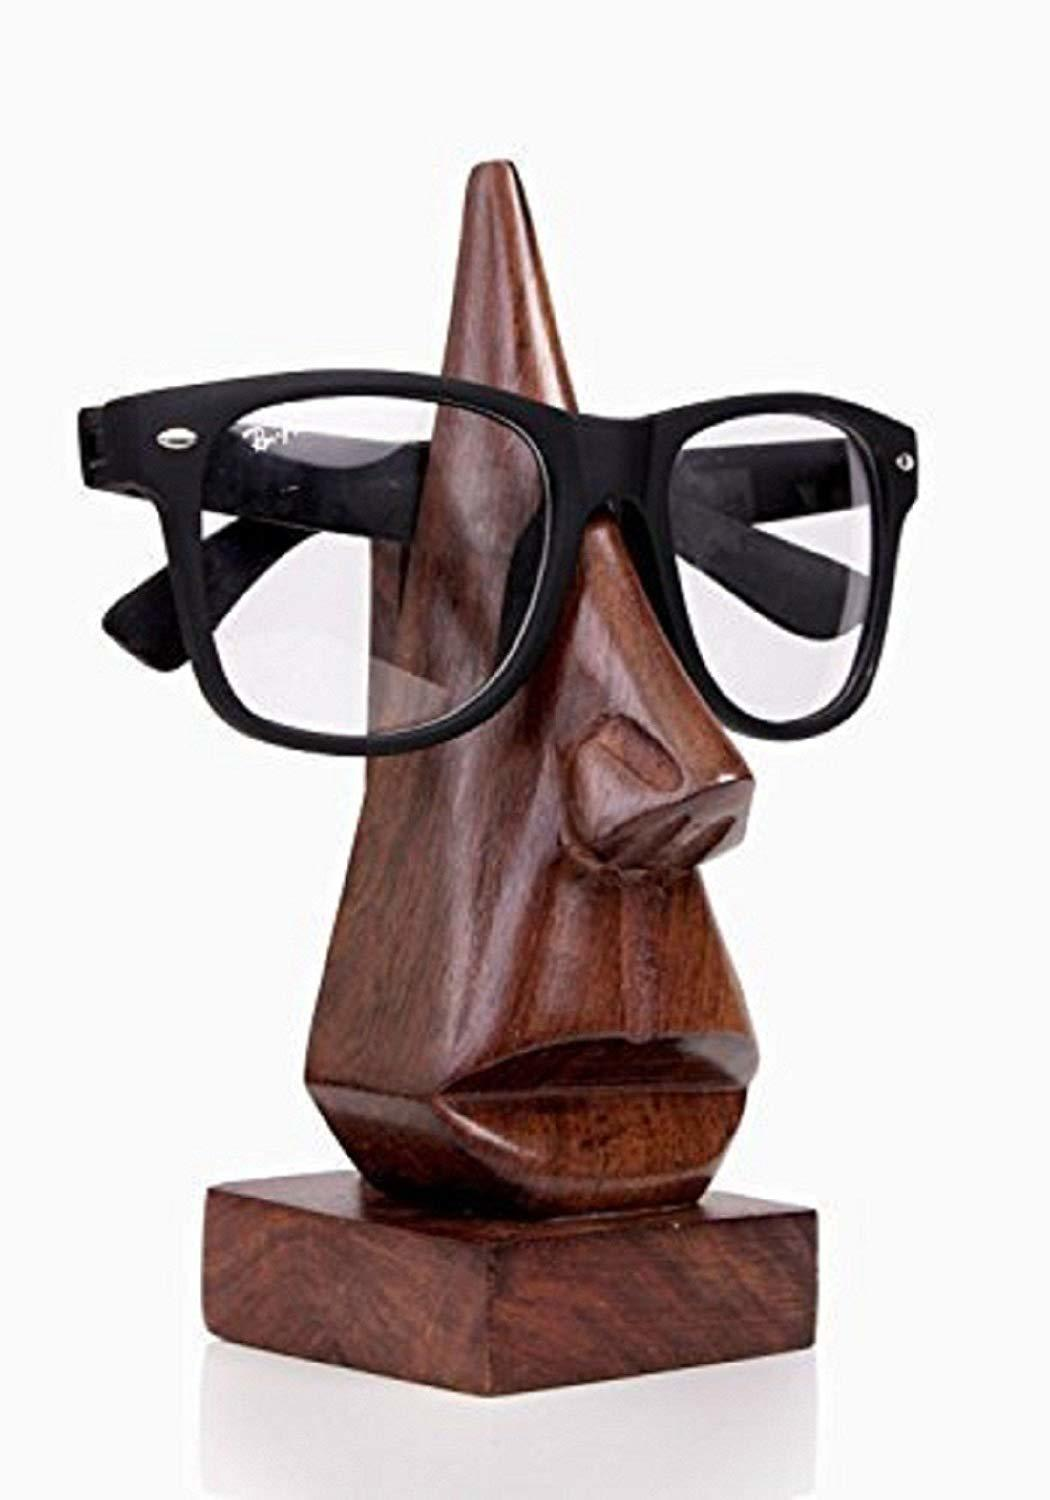 Handmade Wooden Nose Shaped Spectacle Holder Specs Stand & Gift Item